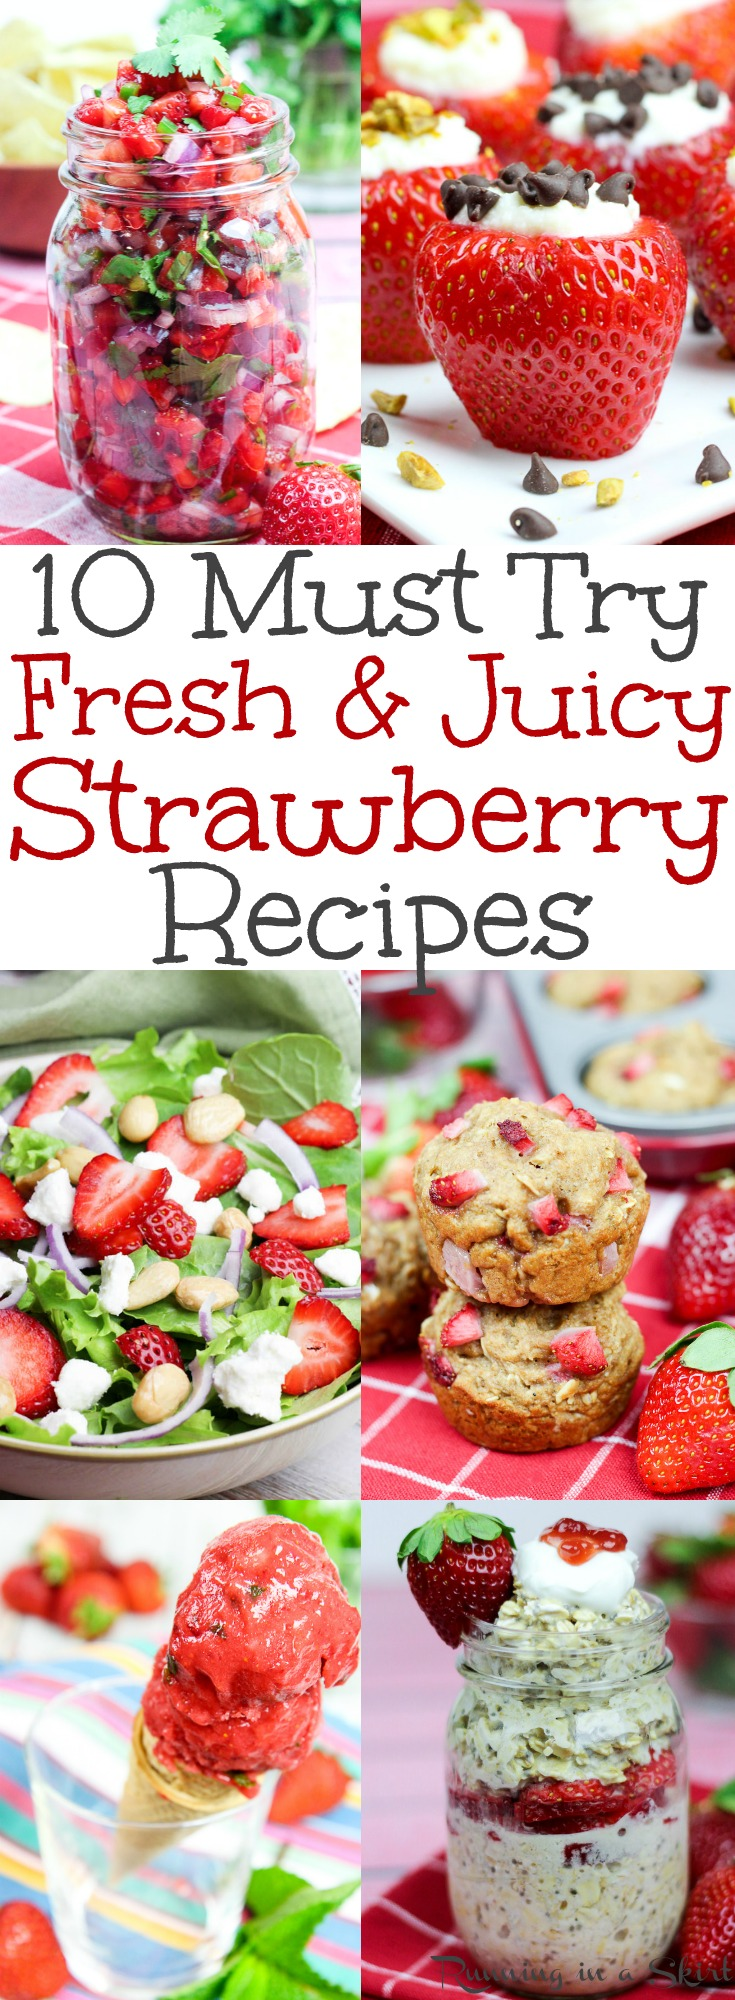 The Best Fresh & Juicy Strawberry Recipe - easy breakfast, dessert, snack, smoothie and salad ideas using berries!  These simple, clean eating homemade recipes will have you longing for summer.  Most recipes have no sugar.  Includes paleo, low carb, whole 30, gluten free, vegan & vegetarian options. / Running in a Skirt via @juliewunder